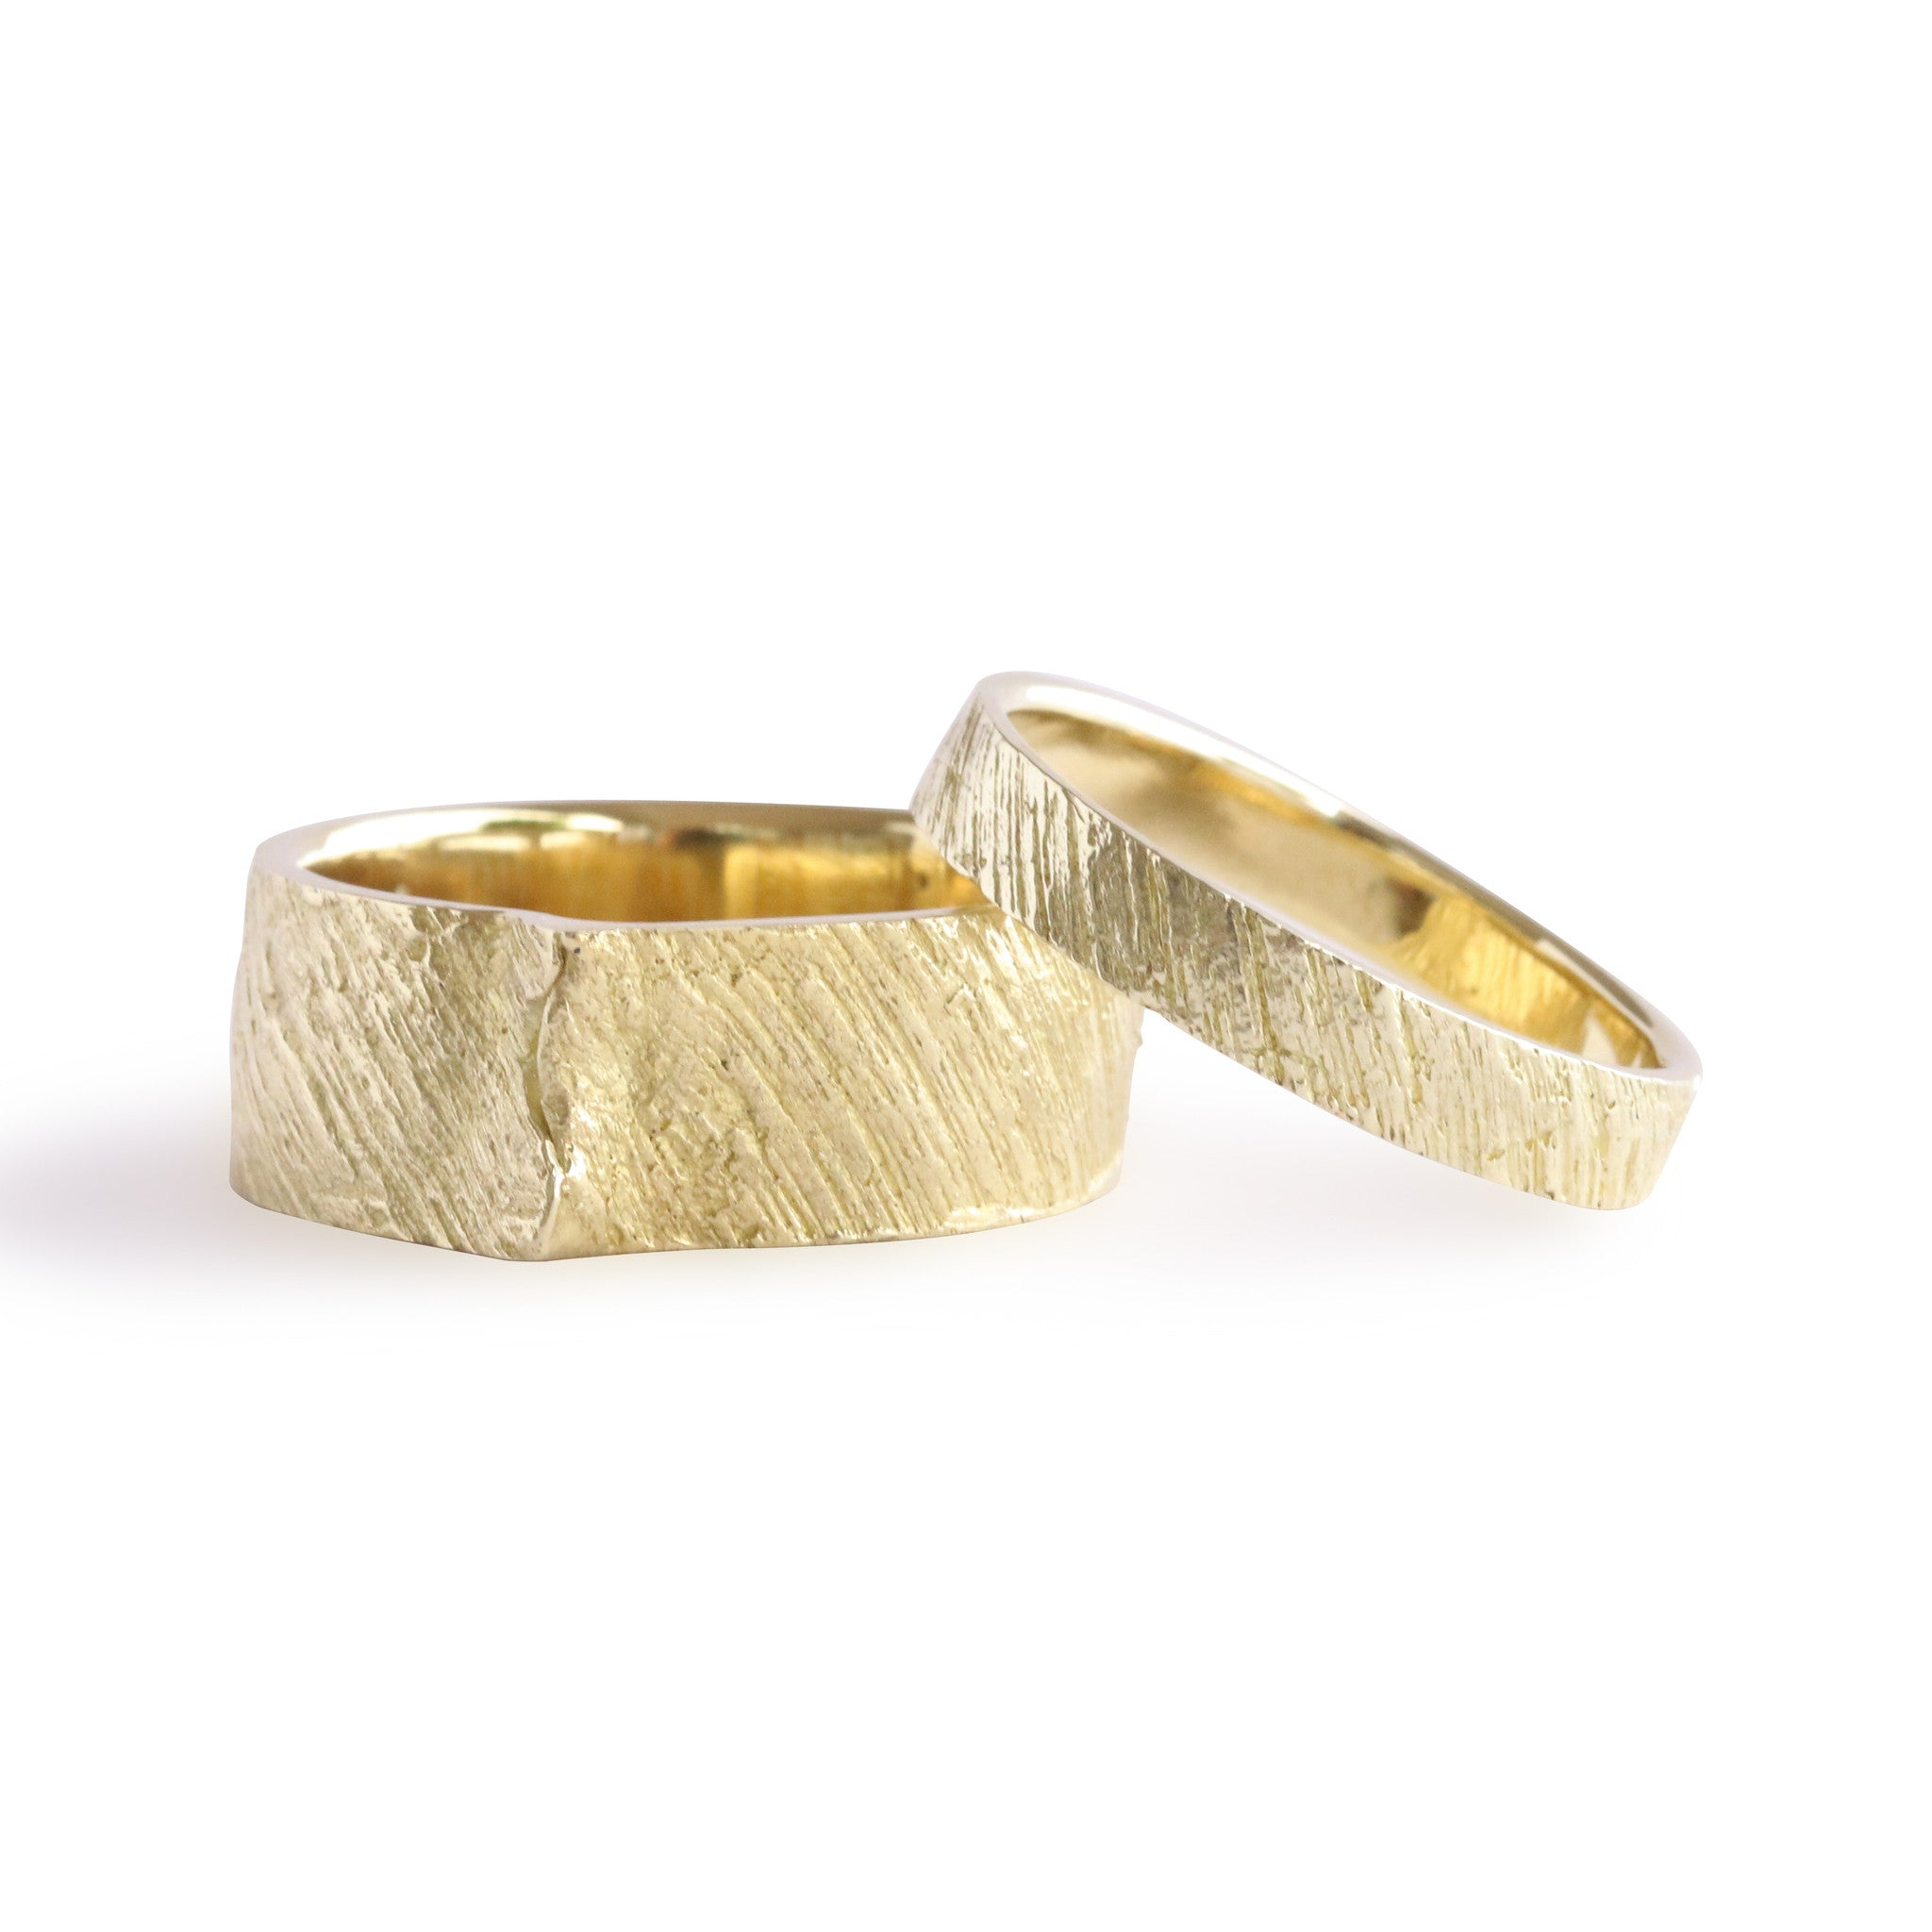 mens overlap textured band products bermuda wood gold bands wedding jewellery s smooth flatt alexandra yellow ring with mosher dock studio detail